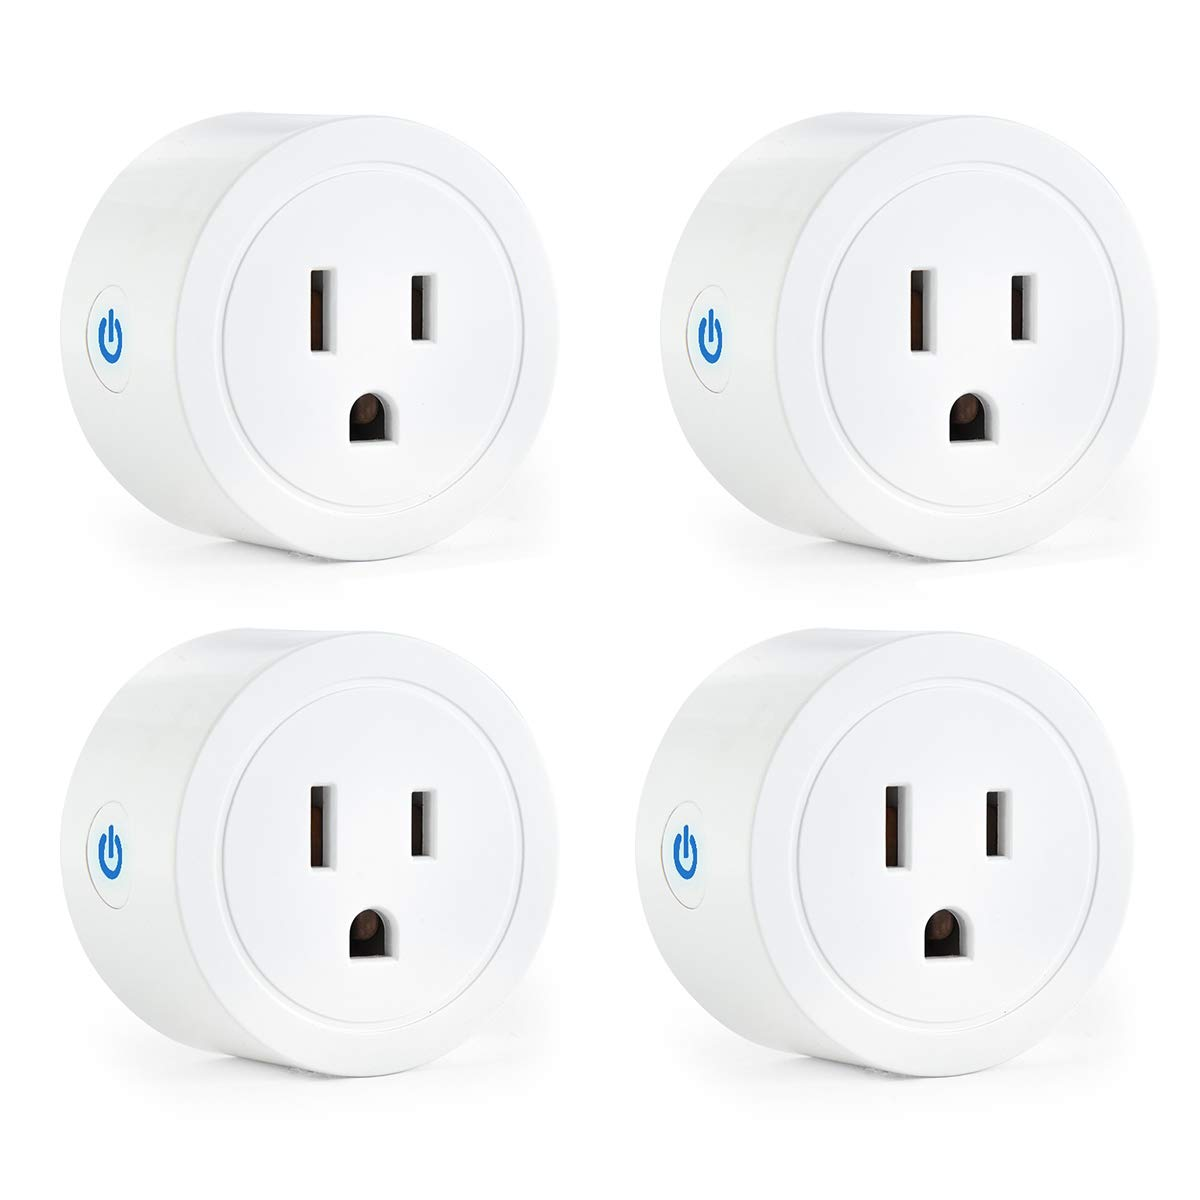 Vestaiot Smart Plugs Compatible with Alexa Google Home IFTTT for Voice Control, Mini Smart Outlet Plug Wifi Smart Socket with Timer Function, FCC ETL Certified, No Hub Required 4 Pack